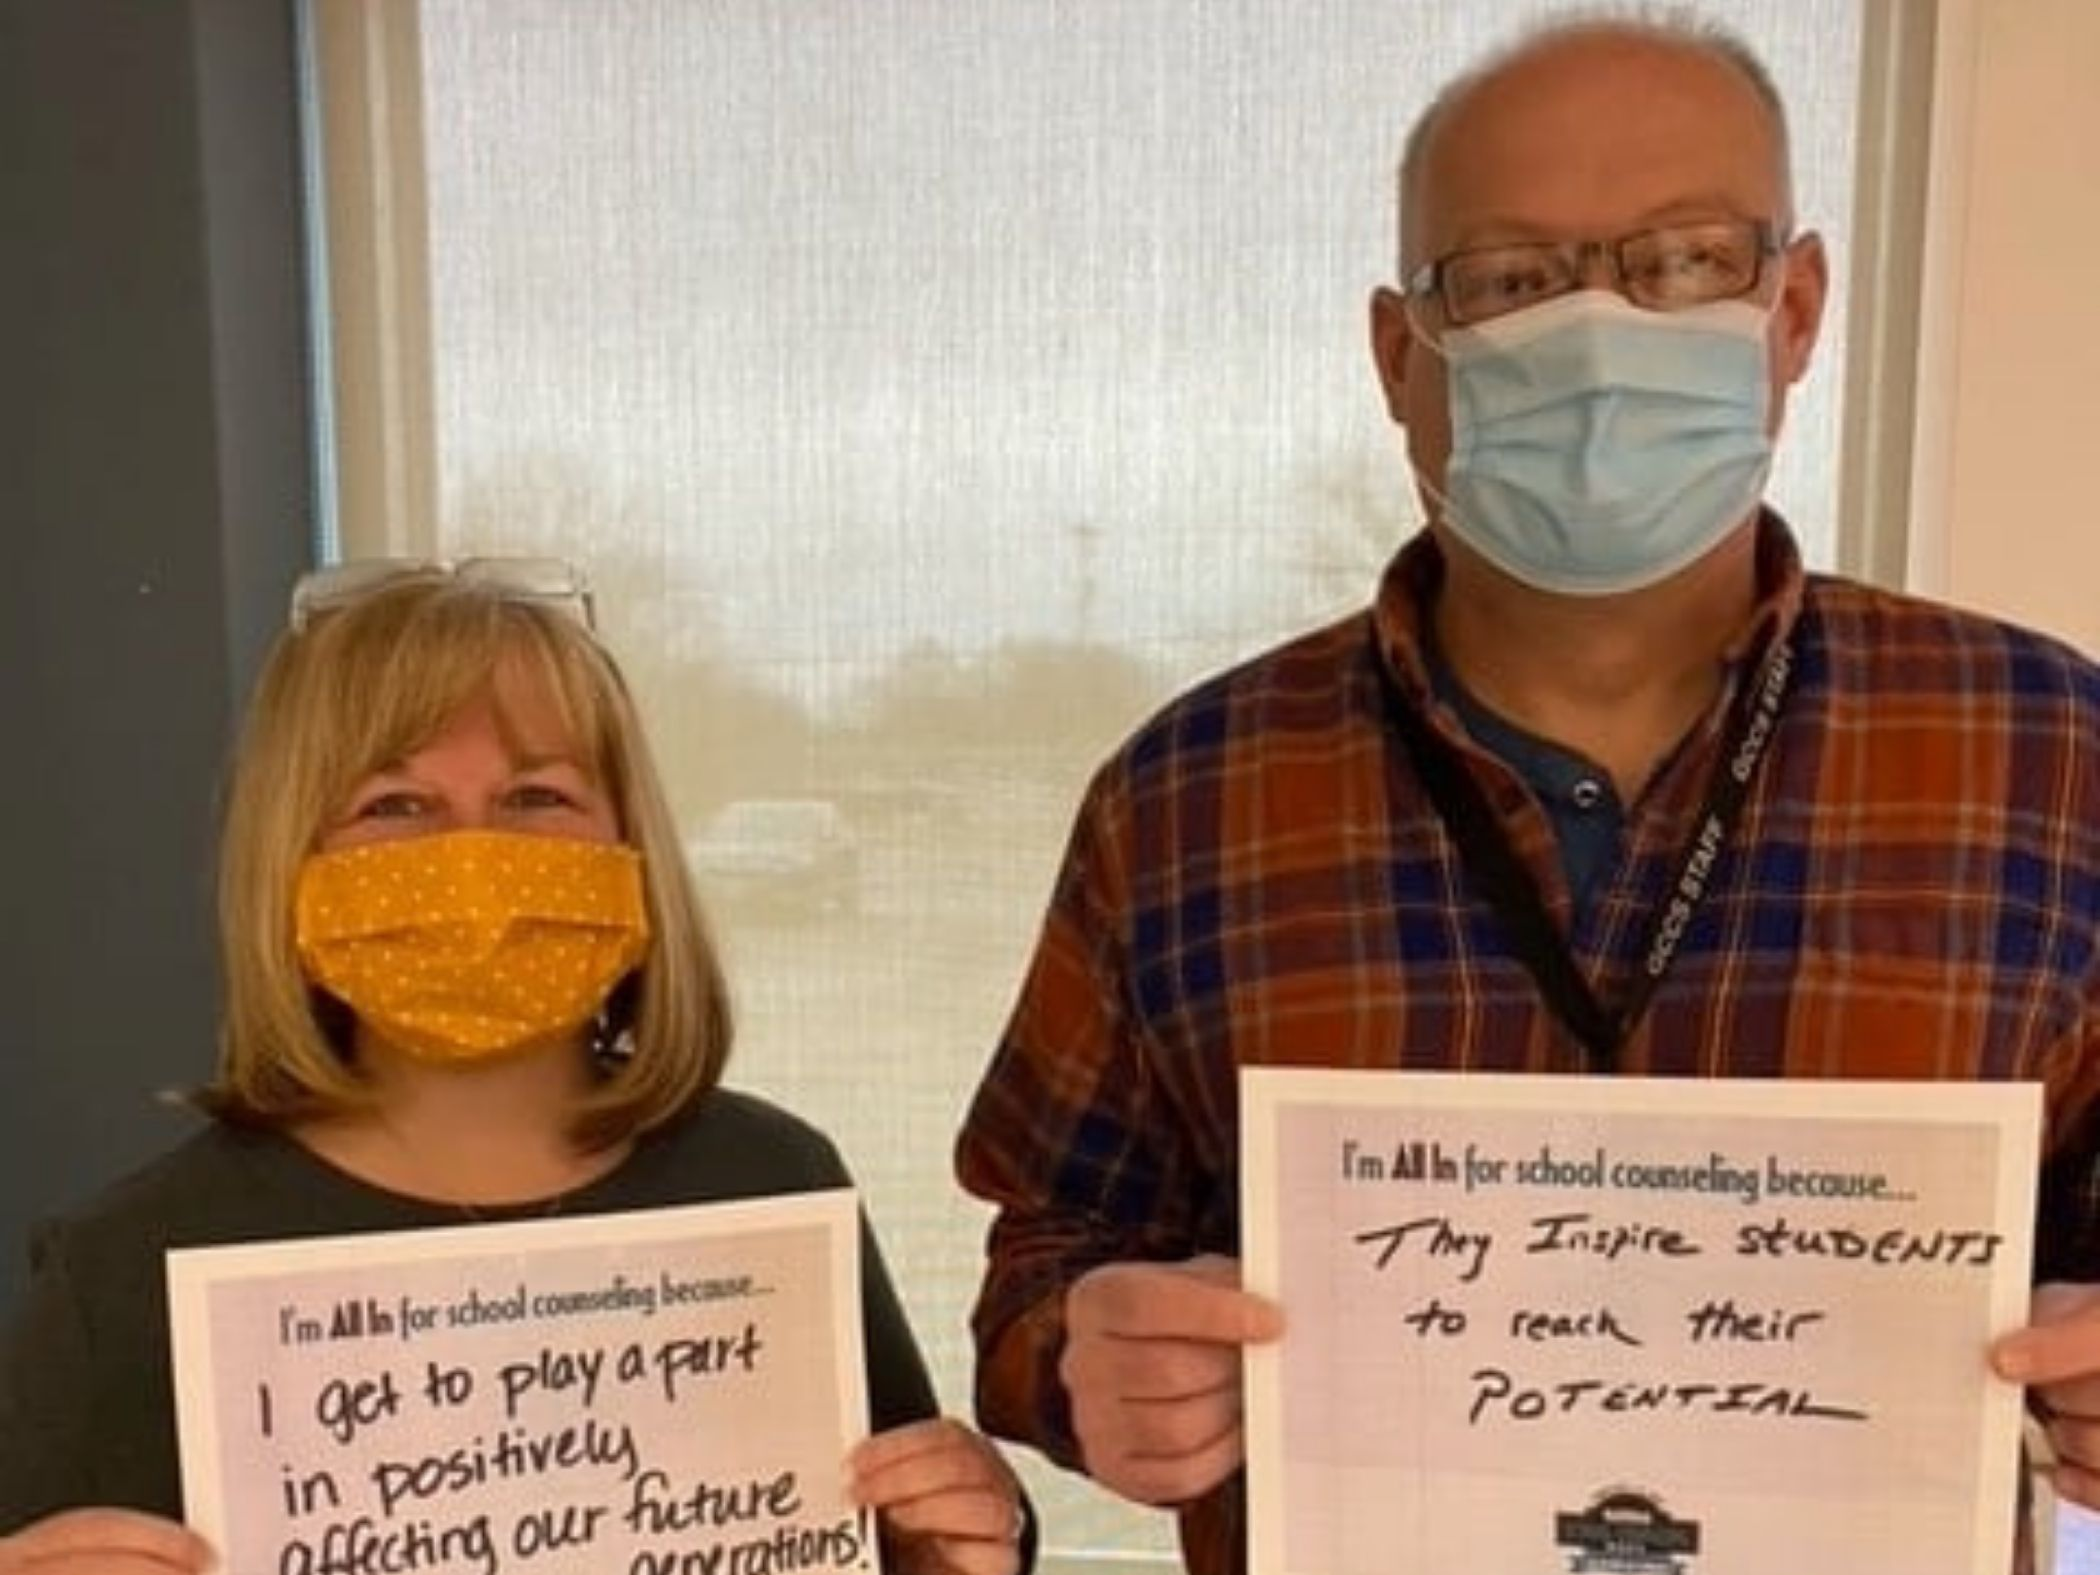 Staff members posing with signs saying why they are all in for school counseling